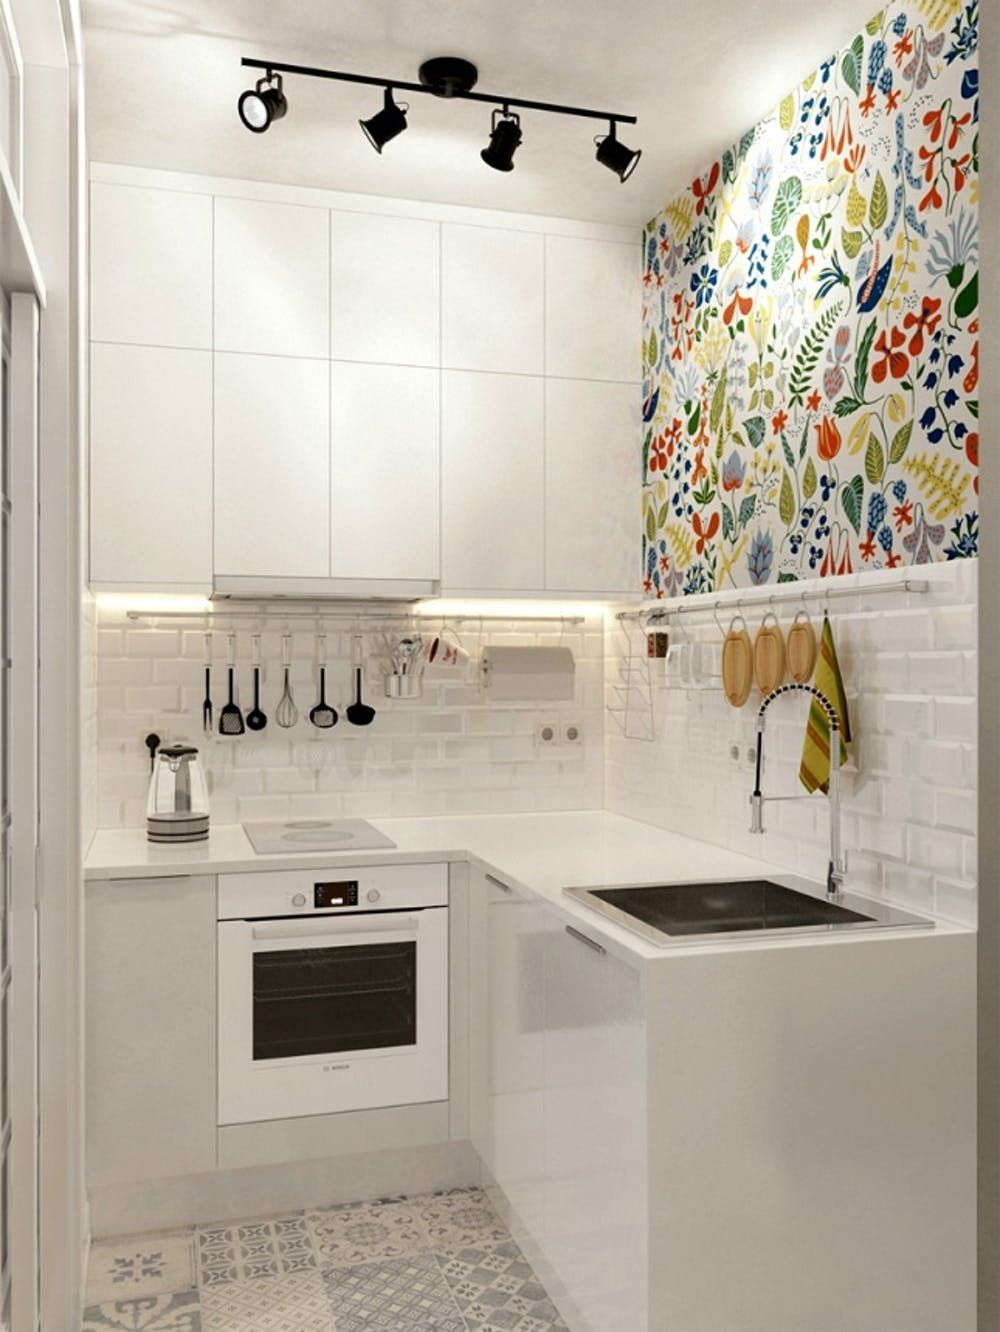 25 Amazing Small Kitchen Remodel Ideas That Perfect For Your